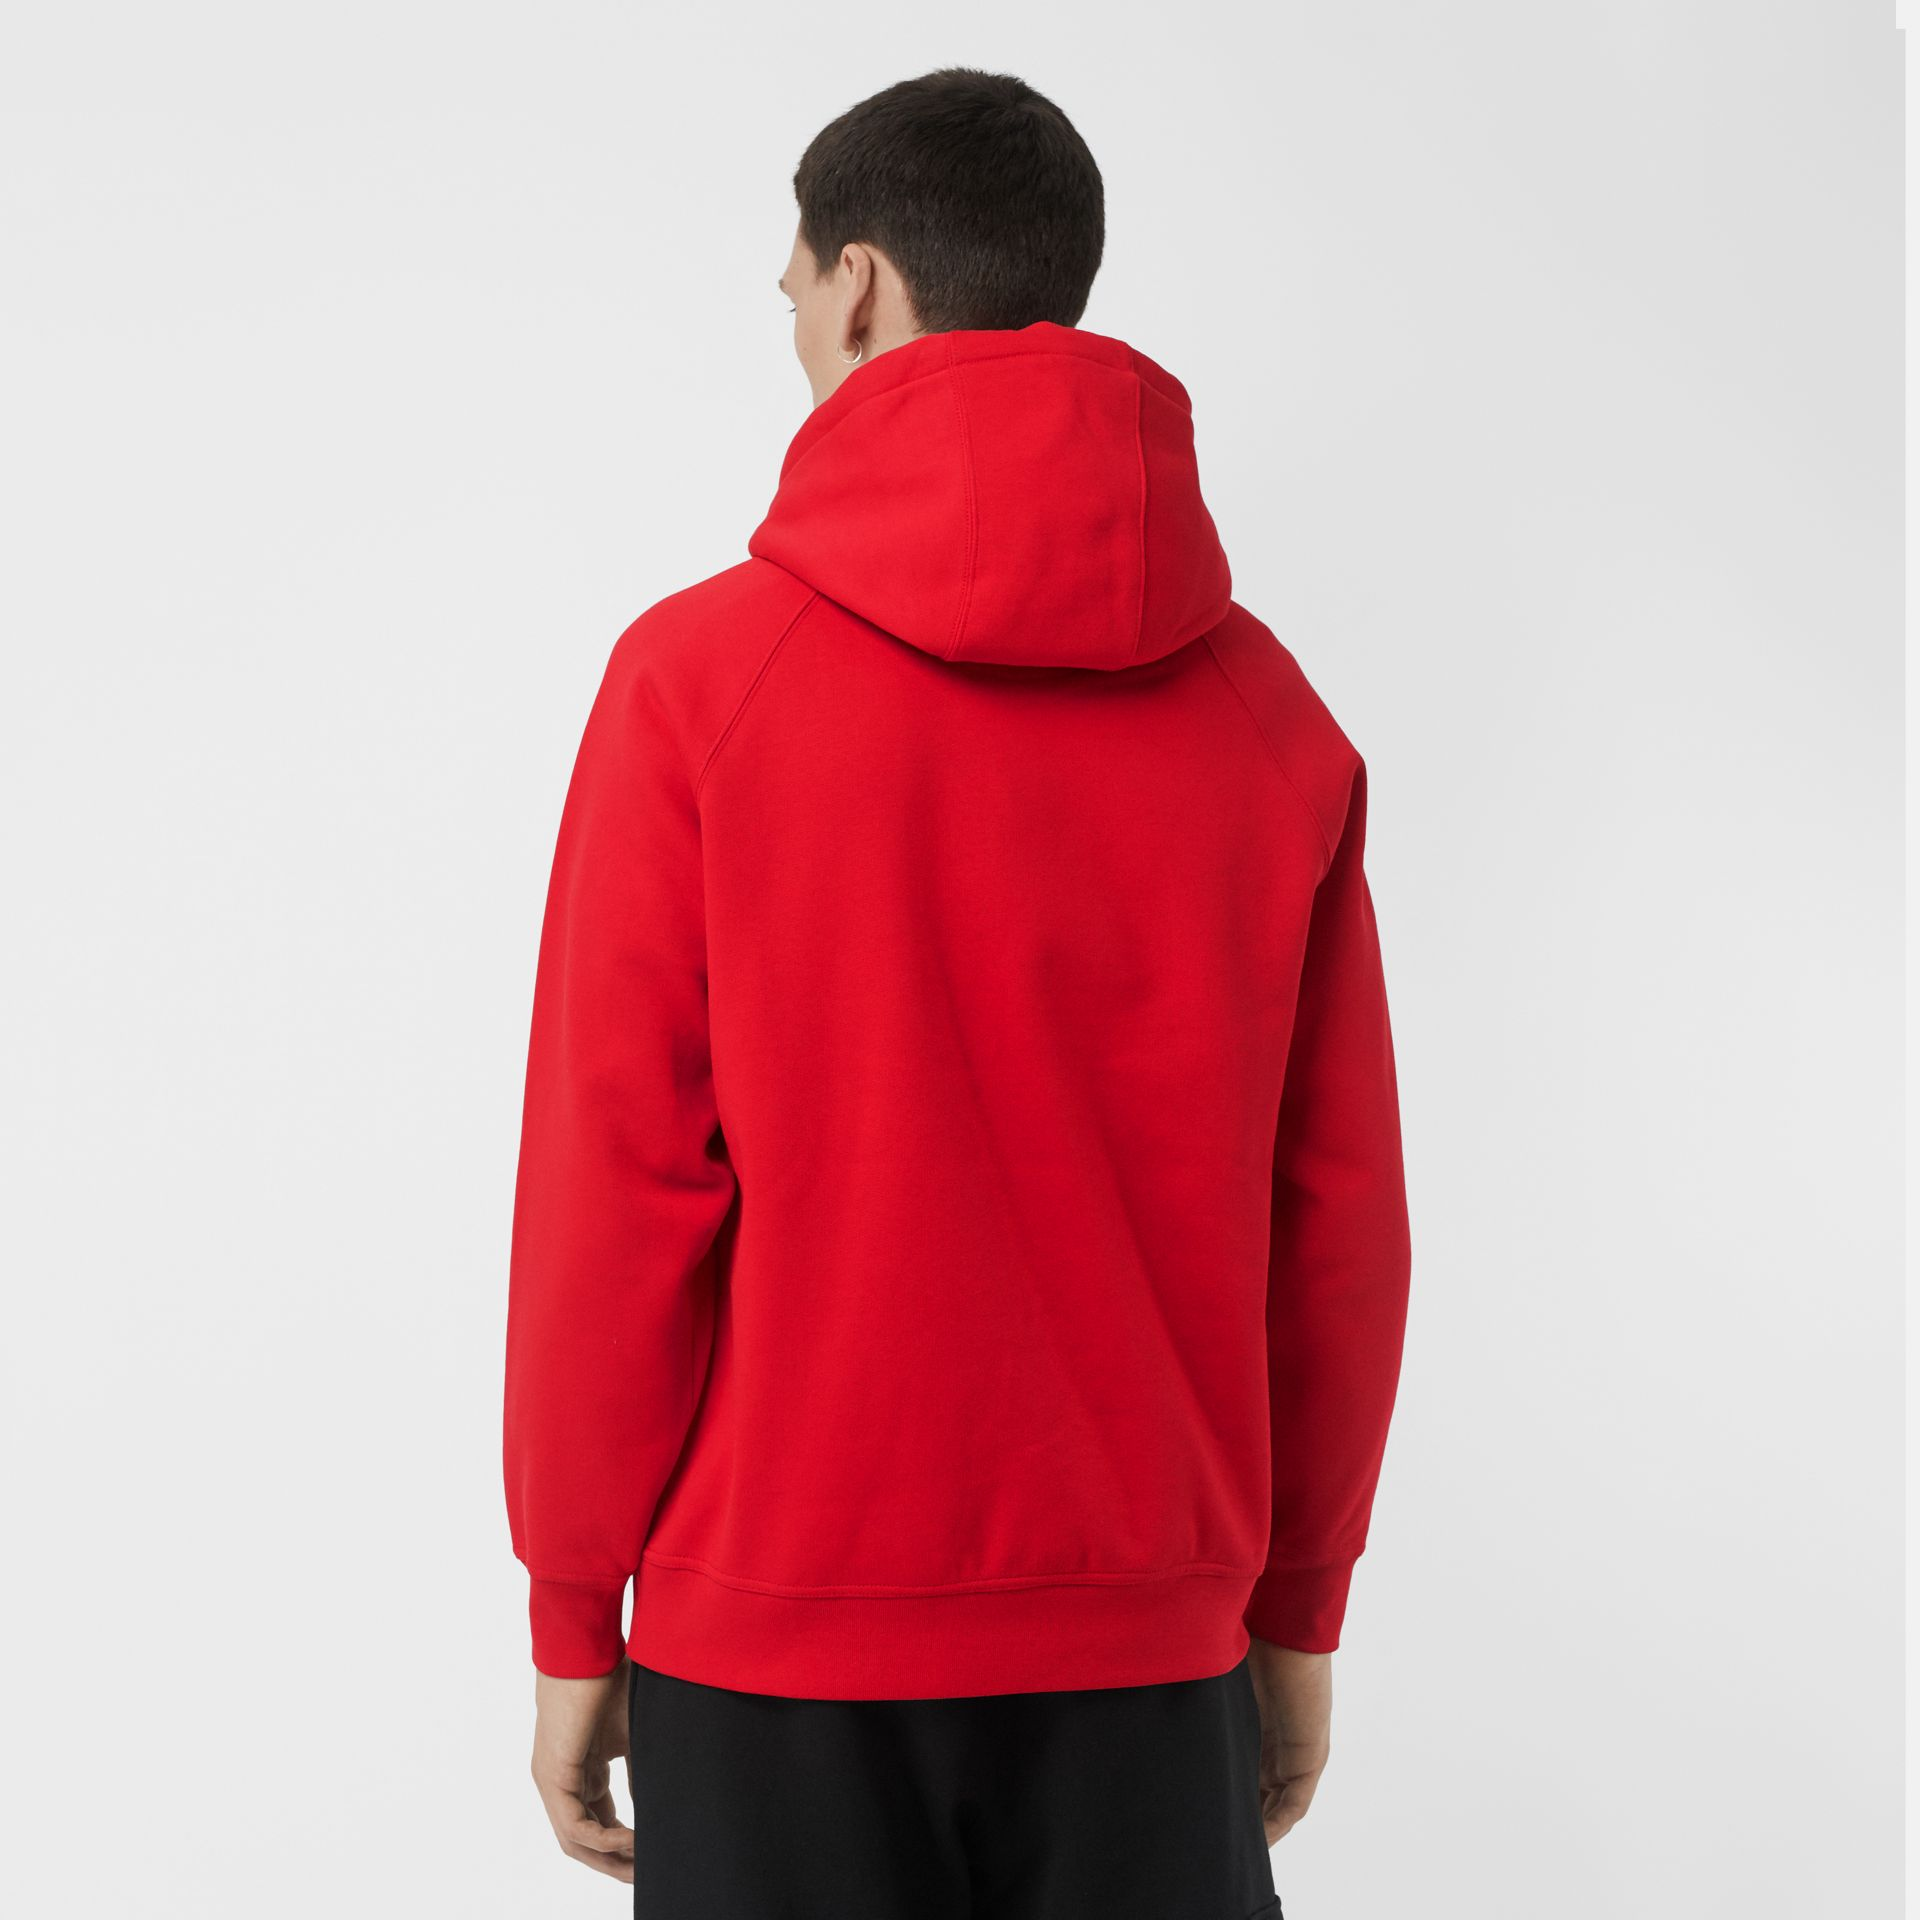 Embroidered Logo Jersey Hoodie in Bright Red - Men | Burberry - gallery image 2